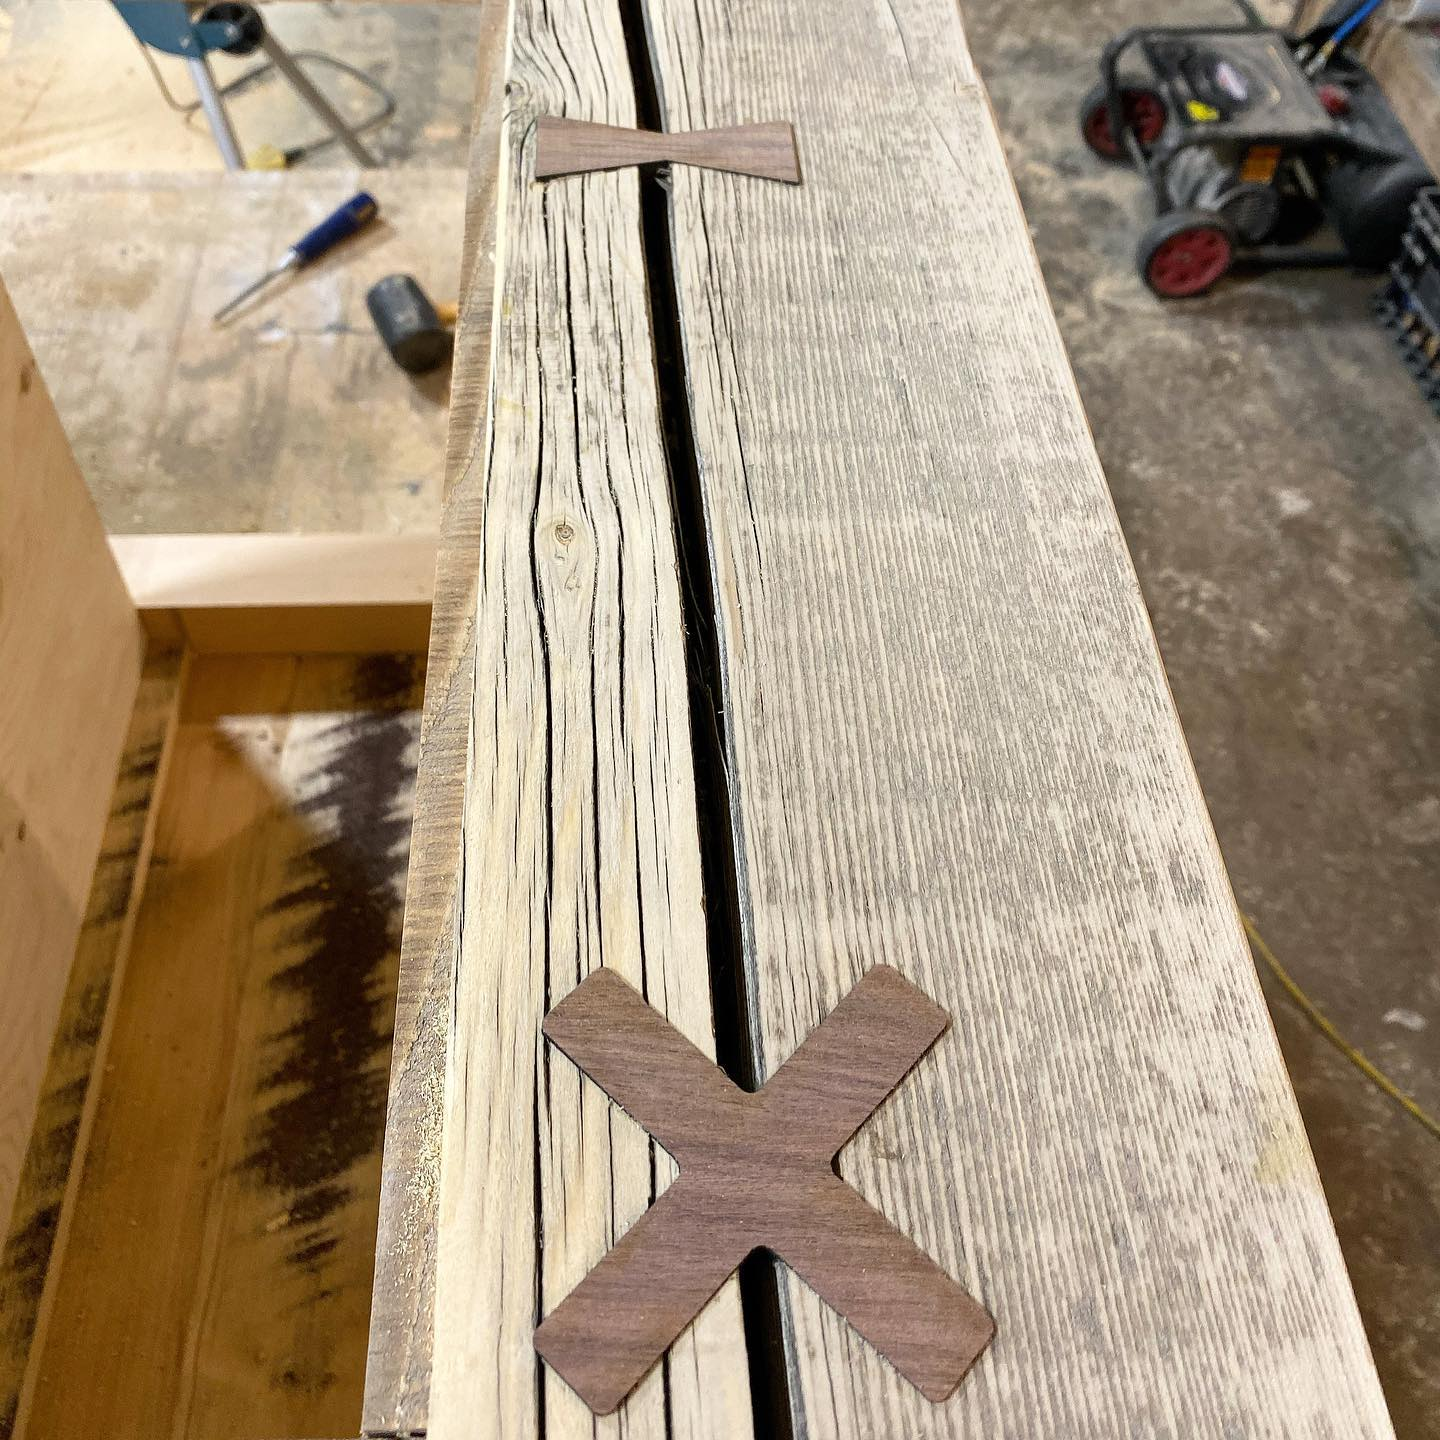 Slabstitcher cross and bow tie